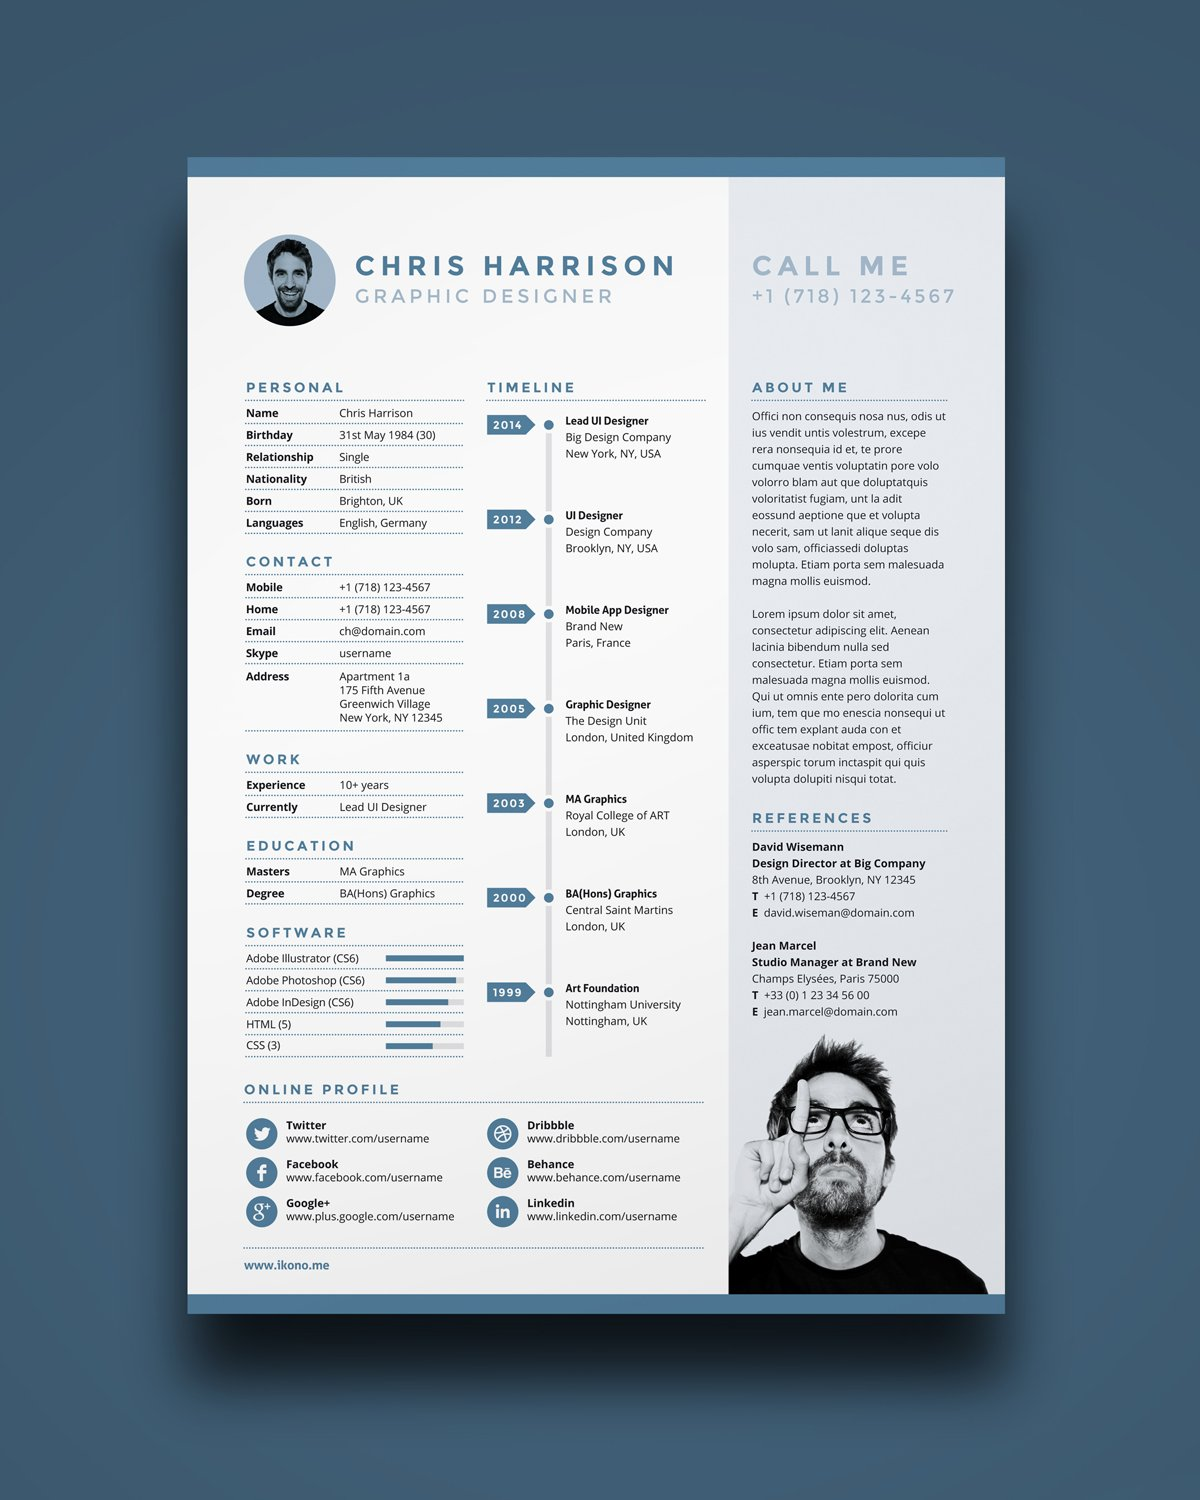 Indesign Resume Template Free Resume A4 Ikonome indesign resume template|wikiresume.com